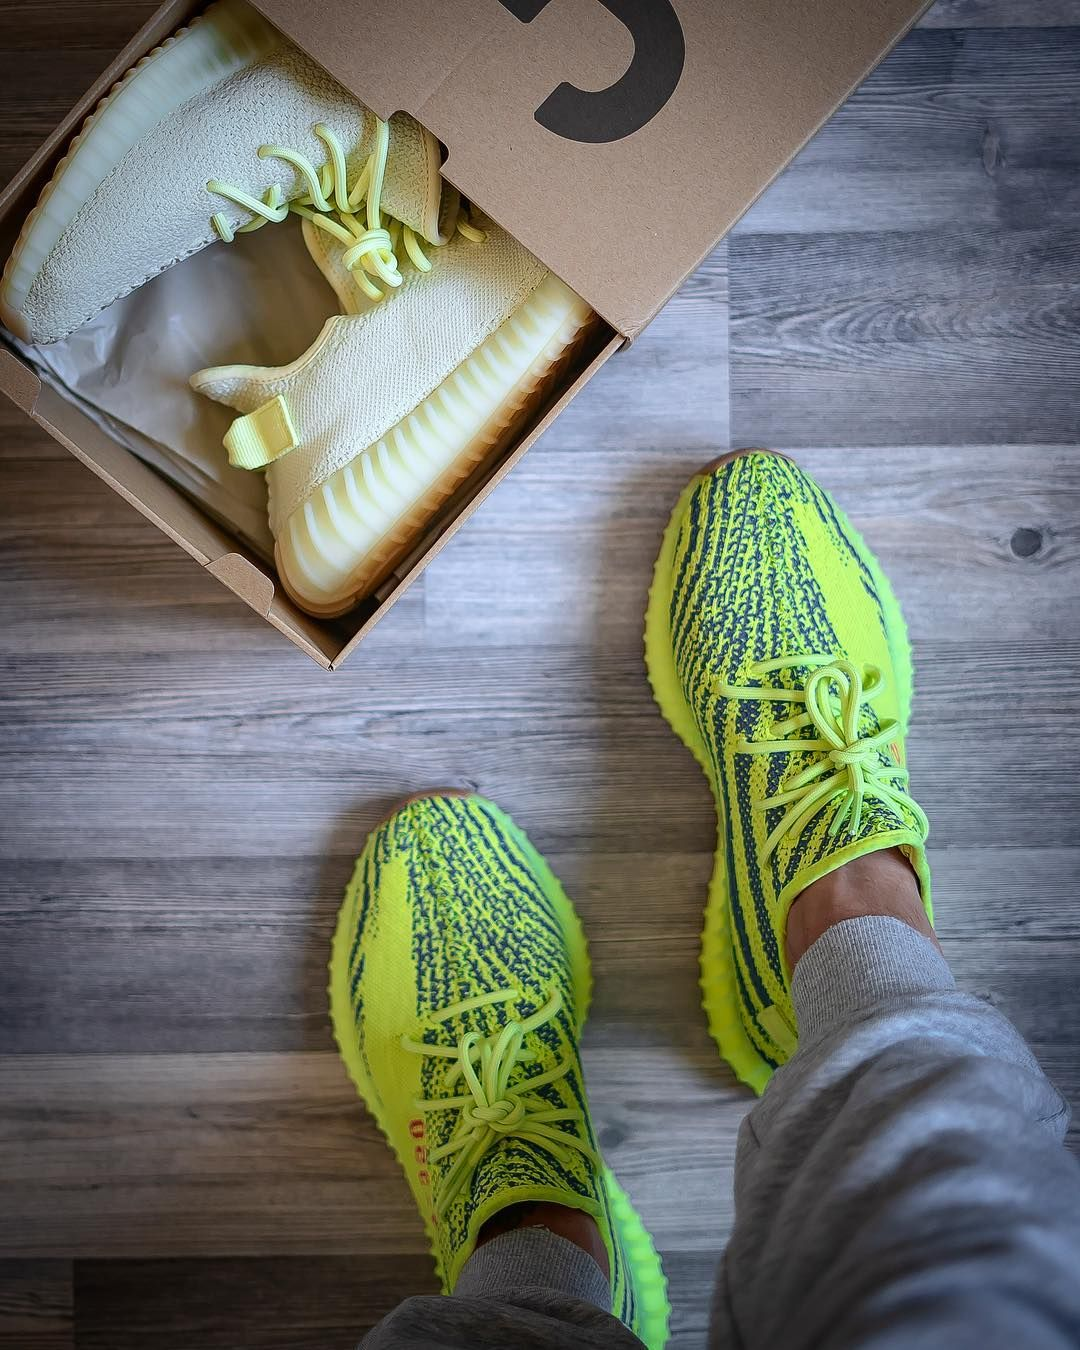 adidas yeezy boost 350 v2 yellow ice